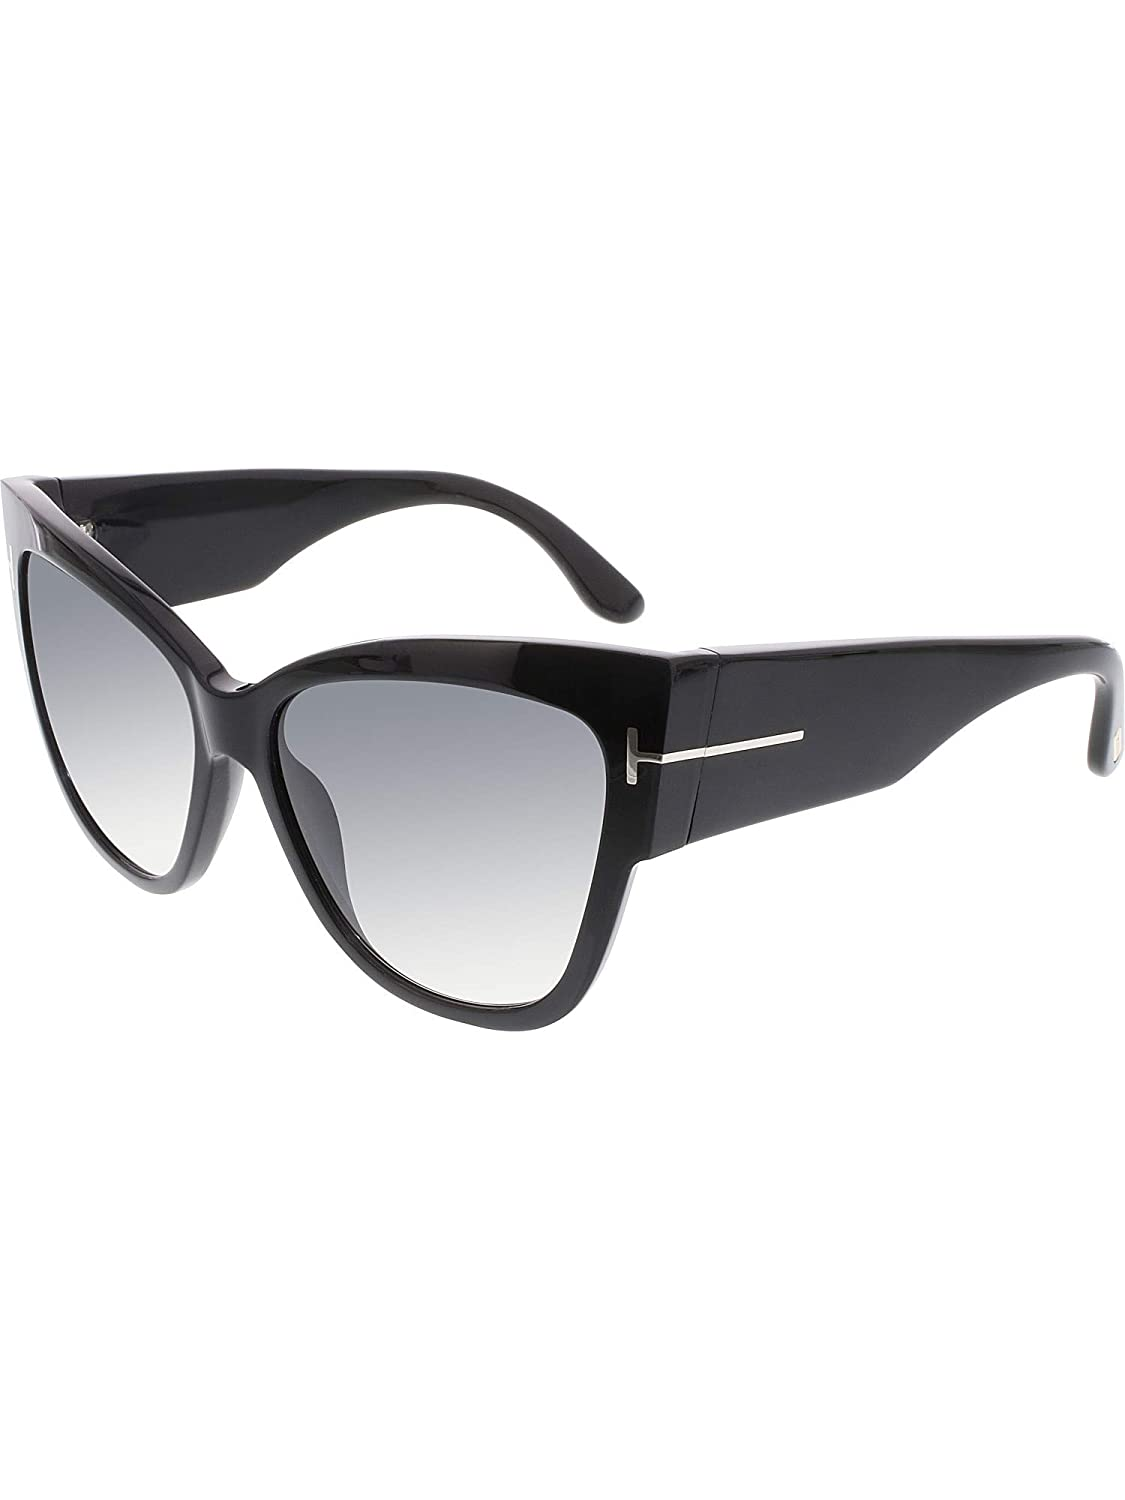 Tom Ford TF371 Cateye Sunglasses Anoushka FT371